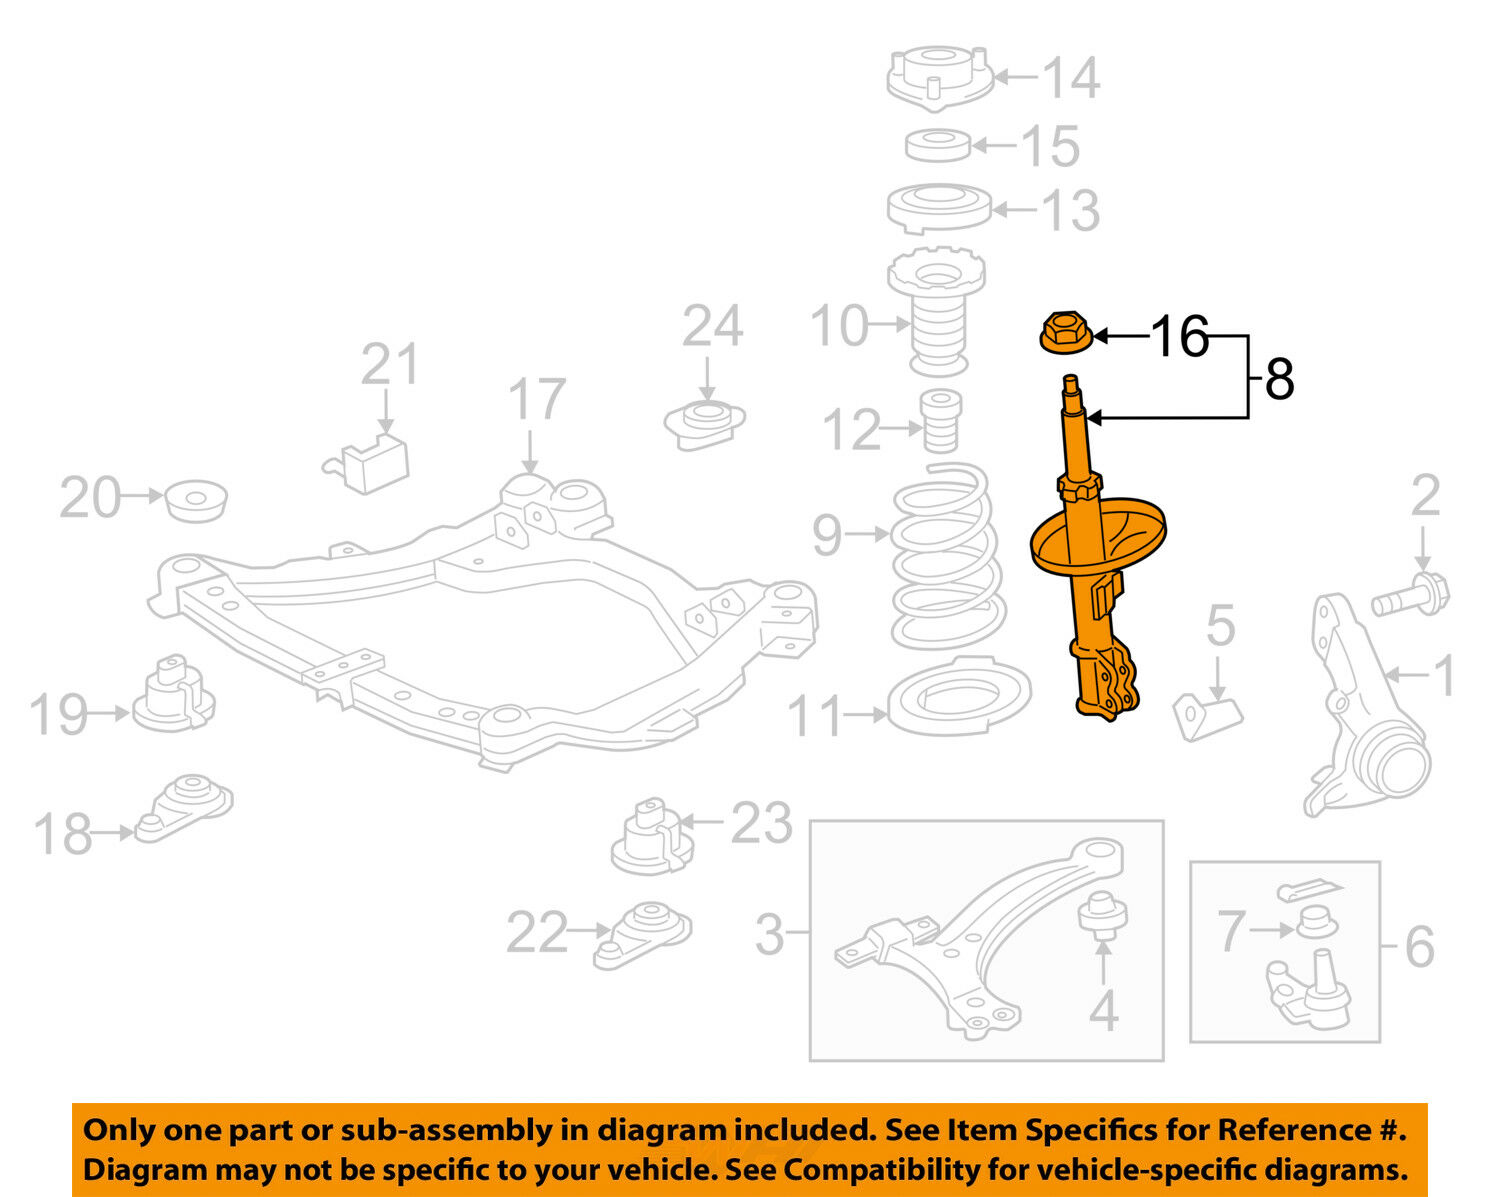 2010 Toyota Camry Front Suspension Diagram Electrical Wiring Diagrams Oem 16 17 Strut Left 485208z114 2001 Echo